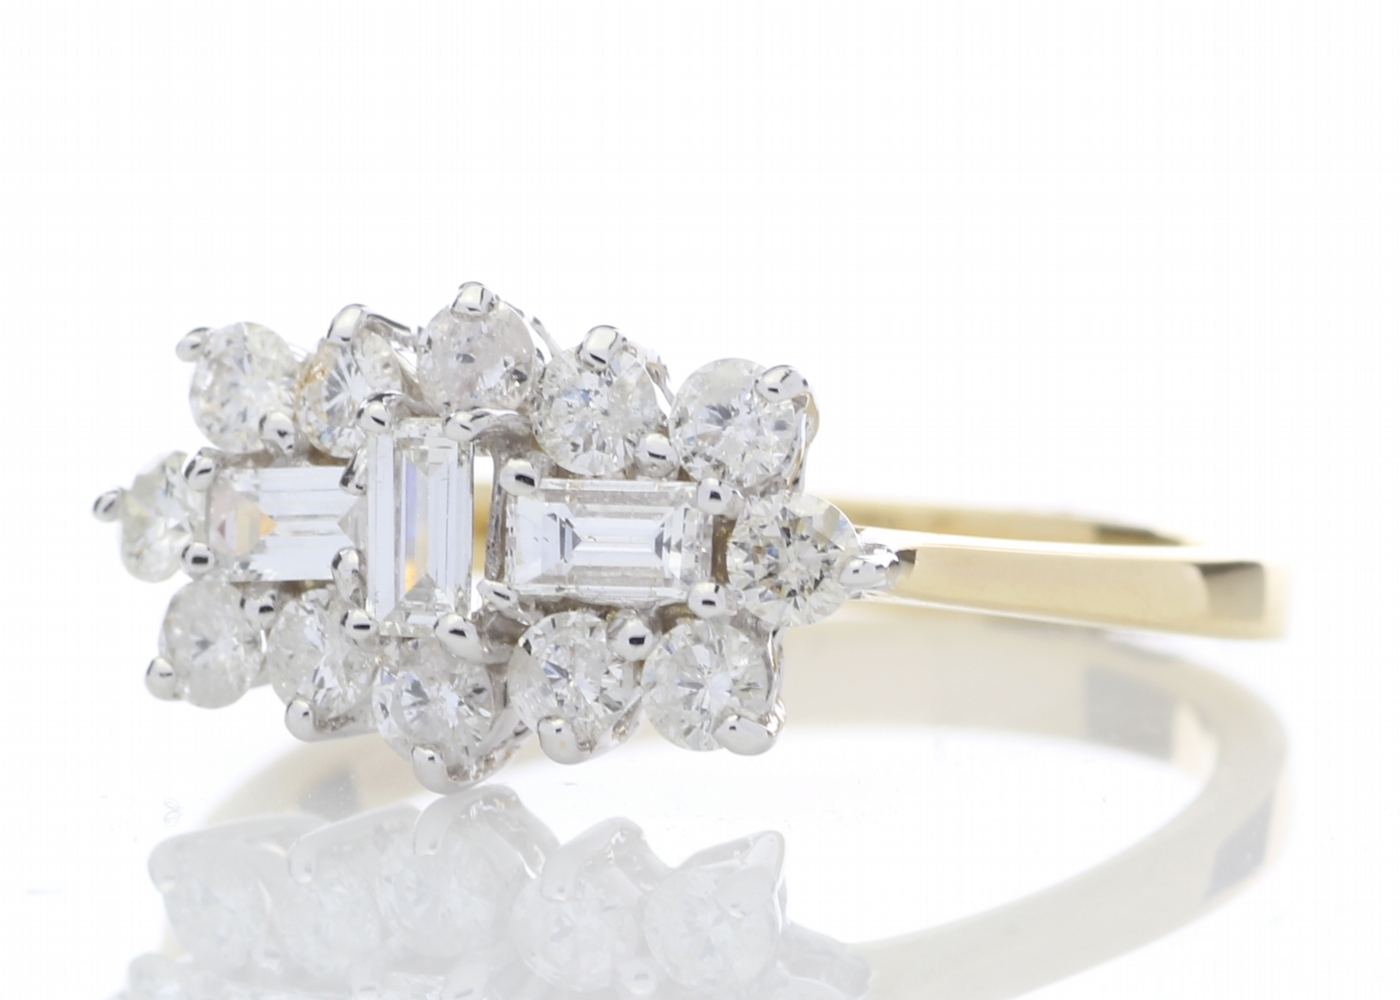 Lot 5 - 18ct Yellow Gold Boat Shape Diamond Cluster Ring 1.00 Carats